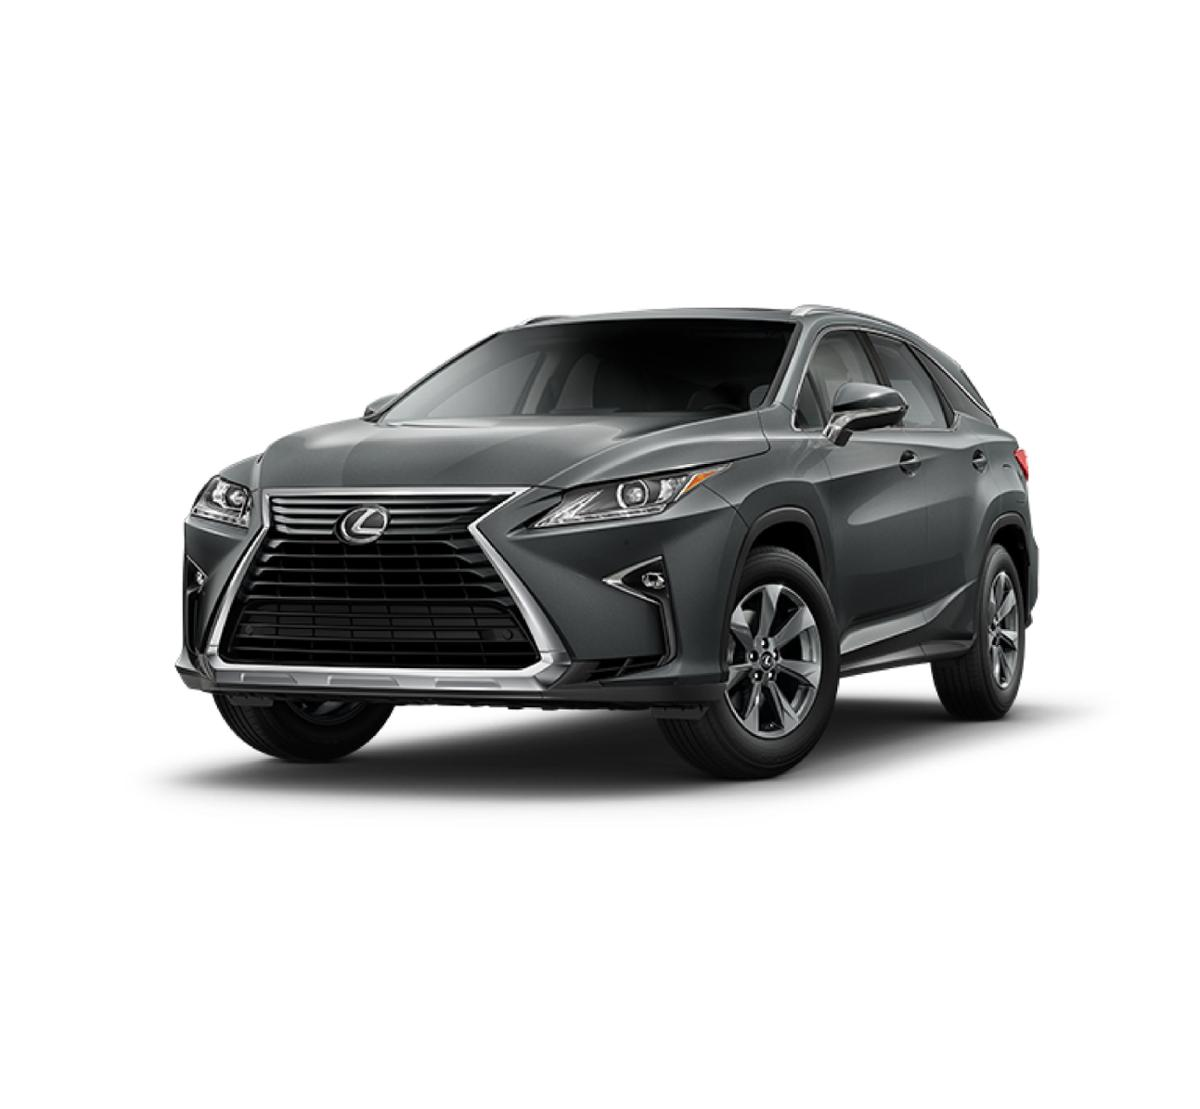 2018 Lexus RX 350L Vehicle Photo in Las Vegas, NV 89146